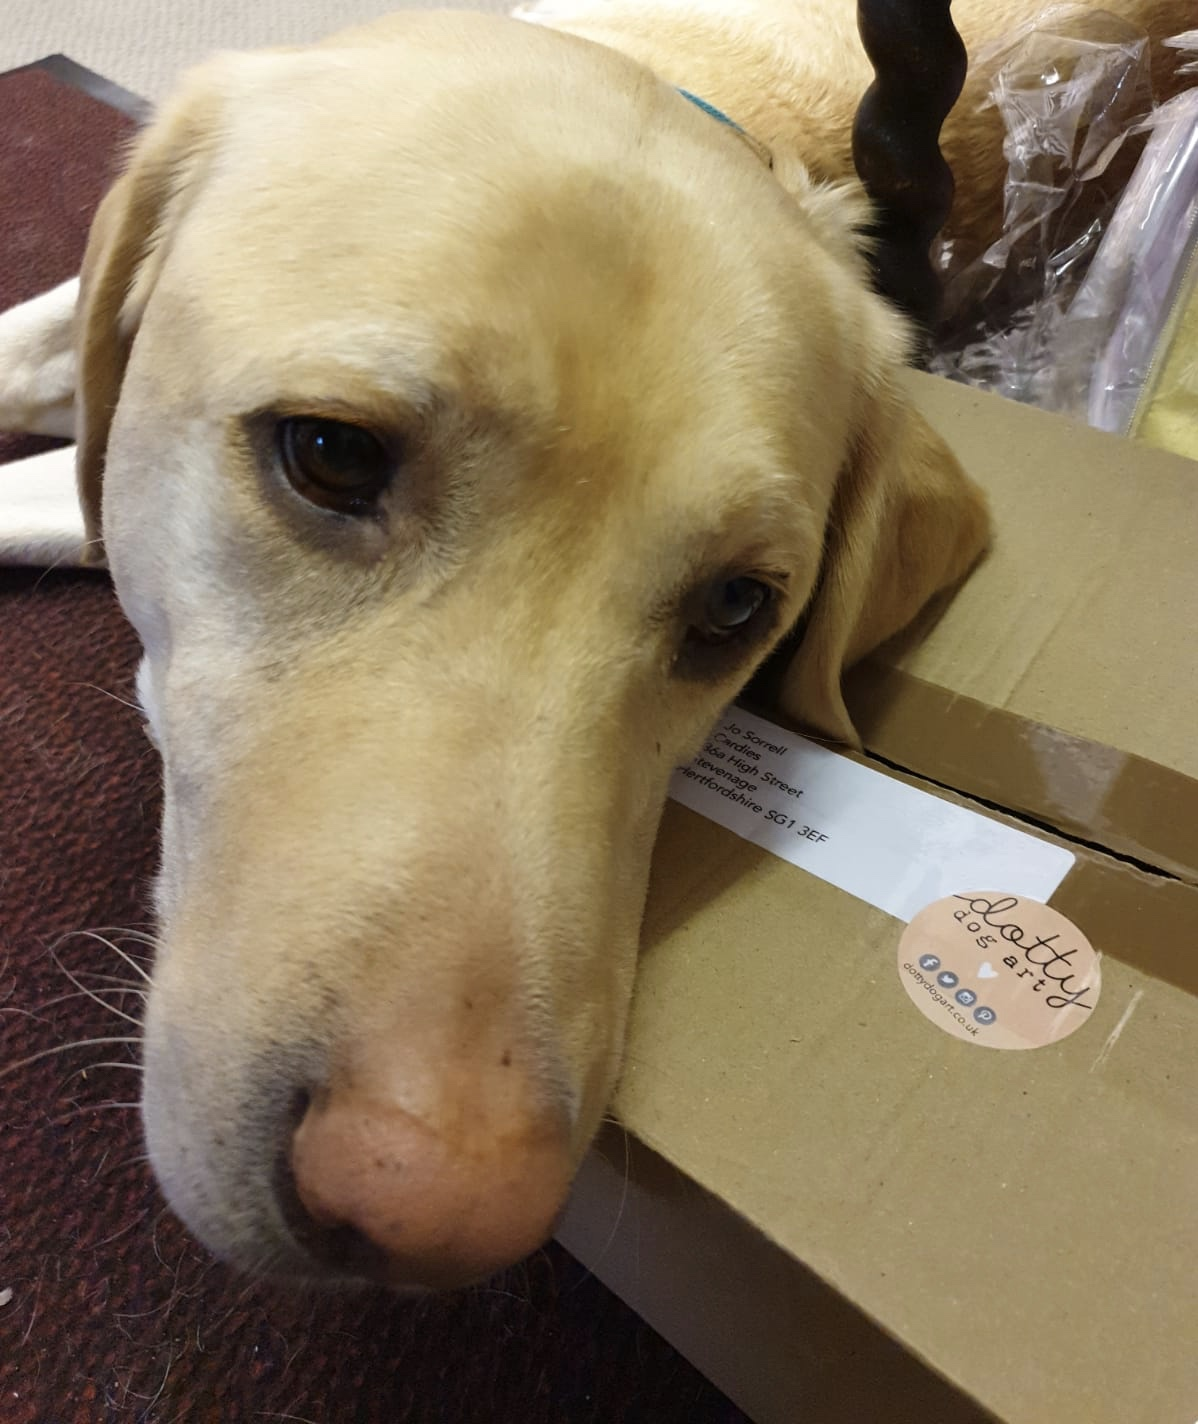 Above: One of Jo's dogs, Orerry showing his appreciation of the delivery from Dotty Dog Art Cards.